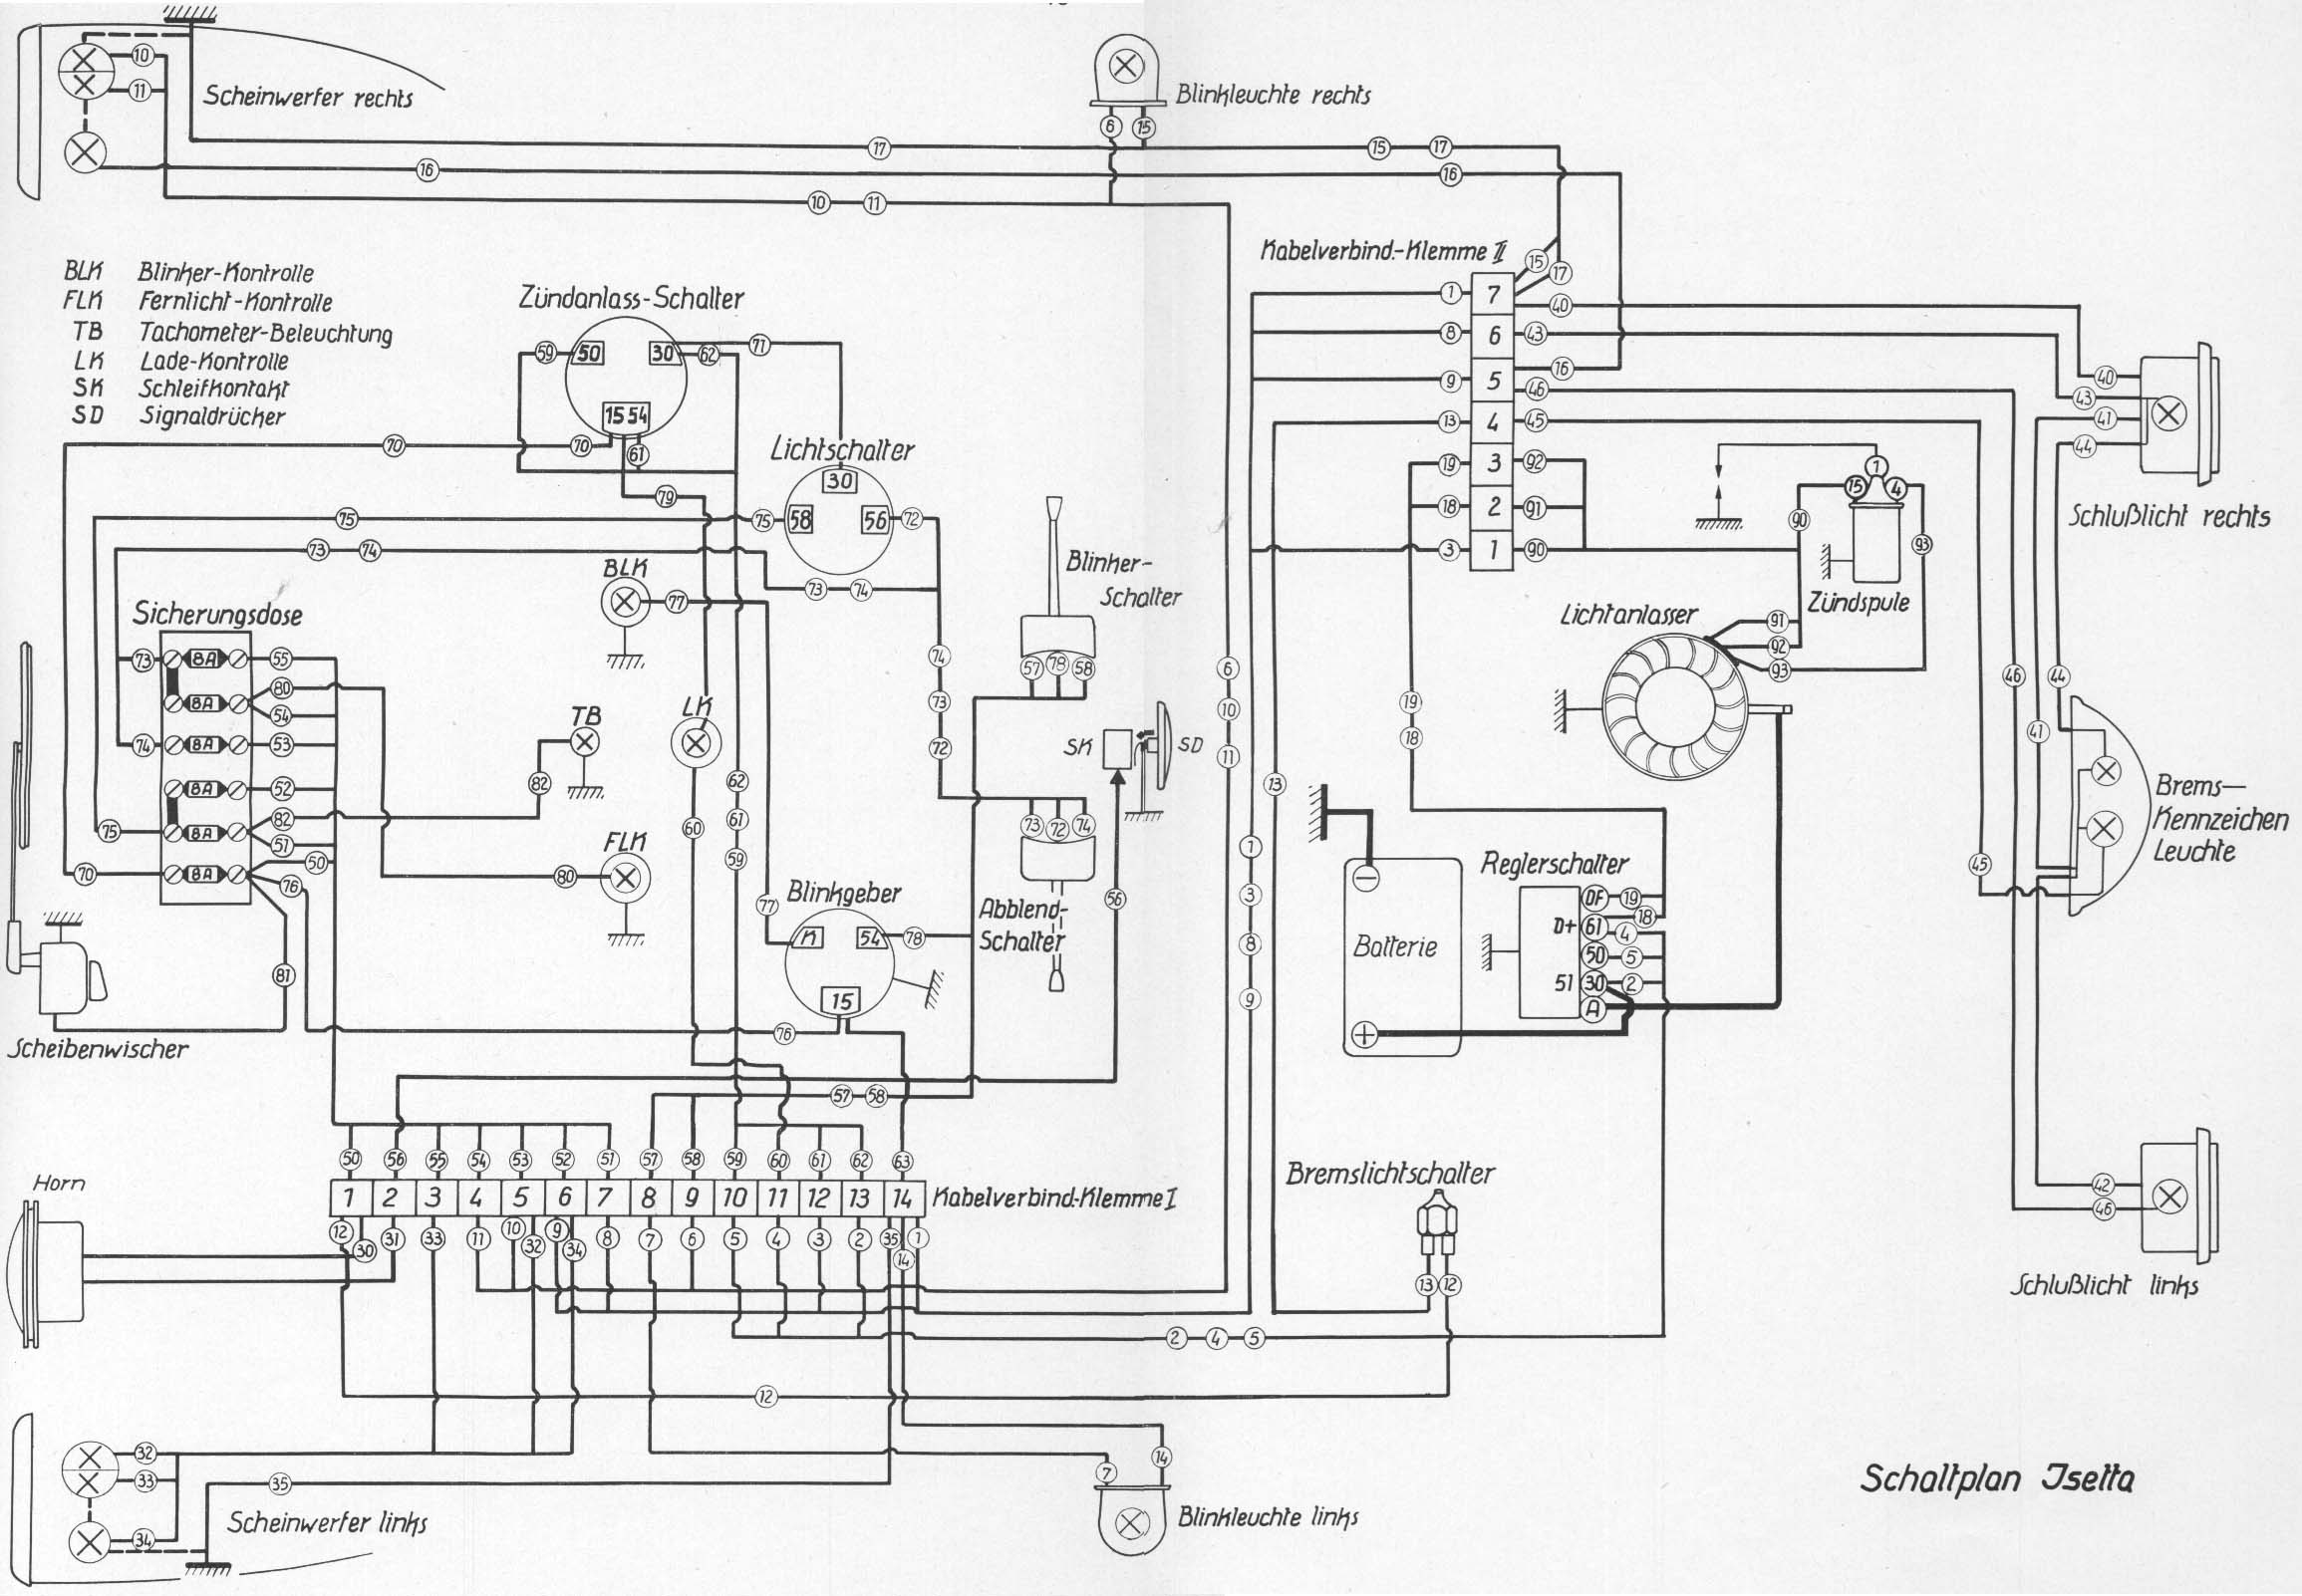 Electrical_Dia_of_300 isettas in south carolina bmw isetta 300 wiring diagram at fashall.co